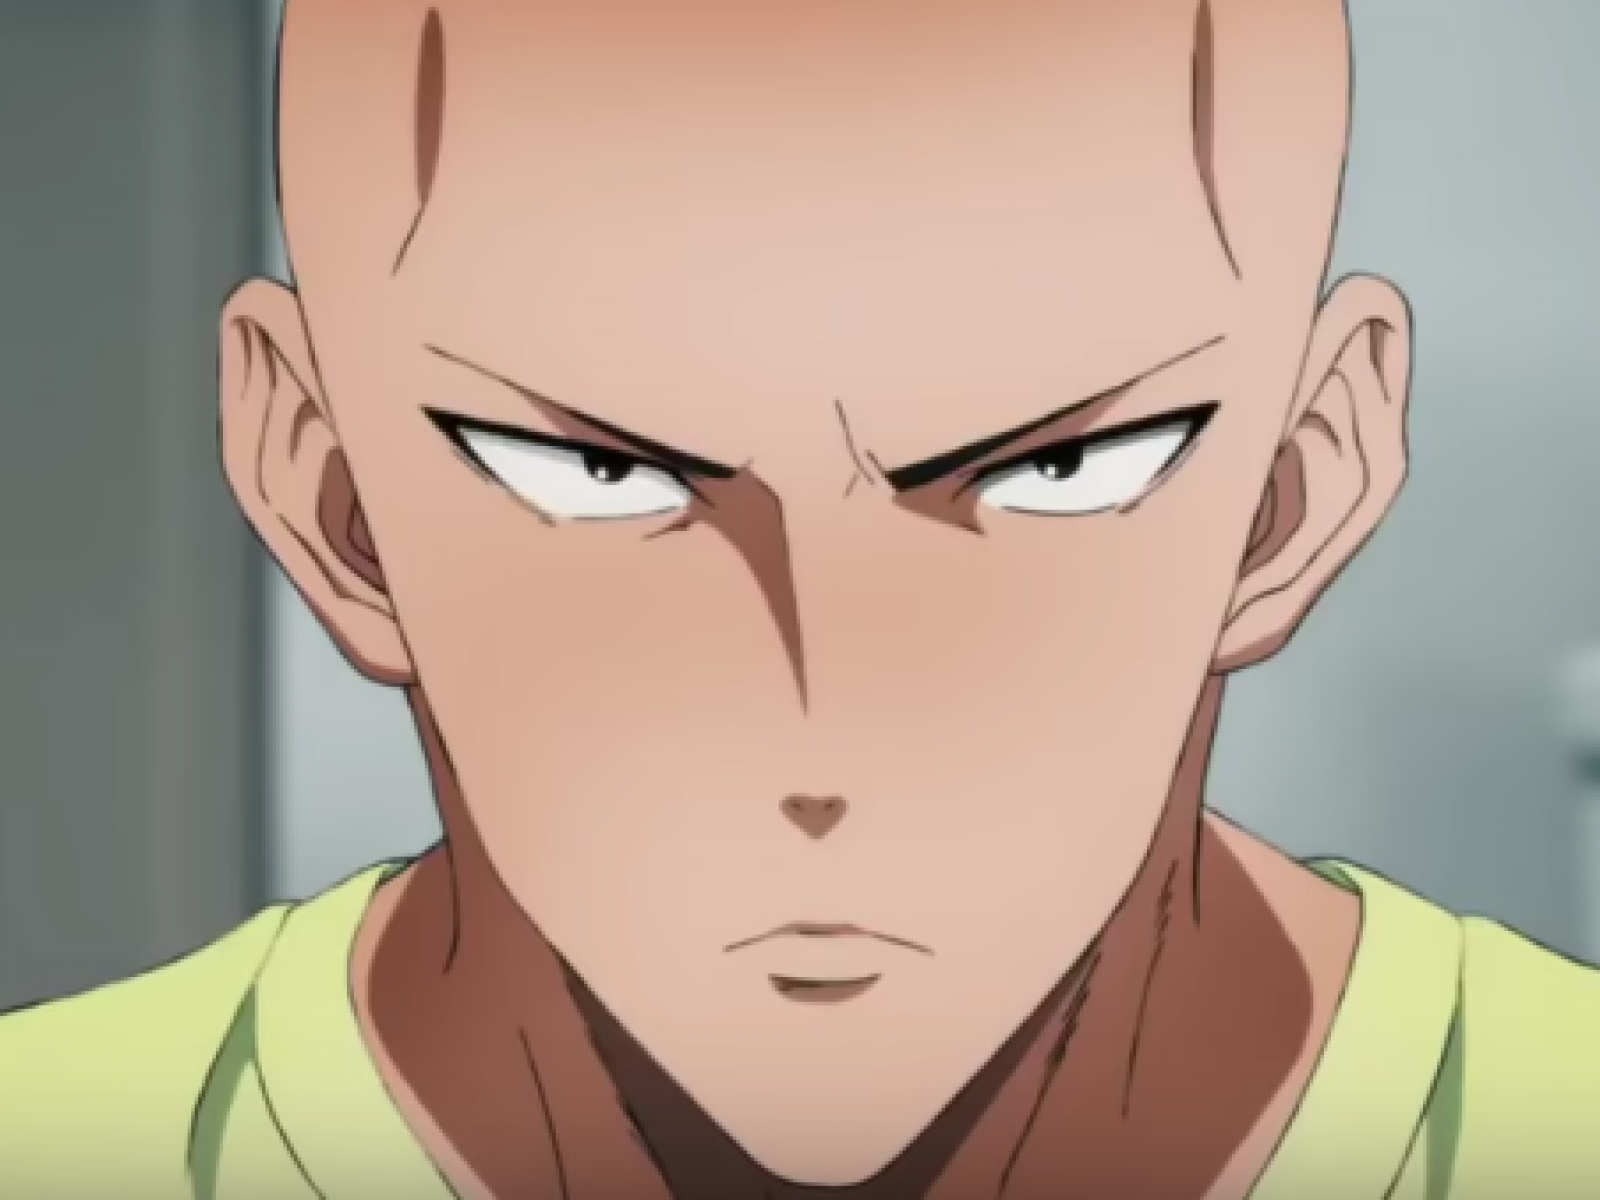 One Punch Man Season 2 Trailer And Release Date Confirmed For April